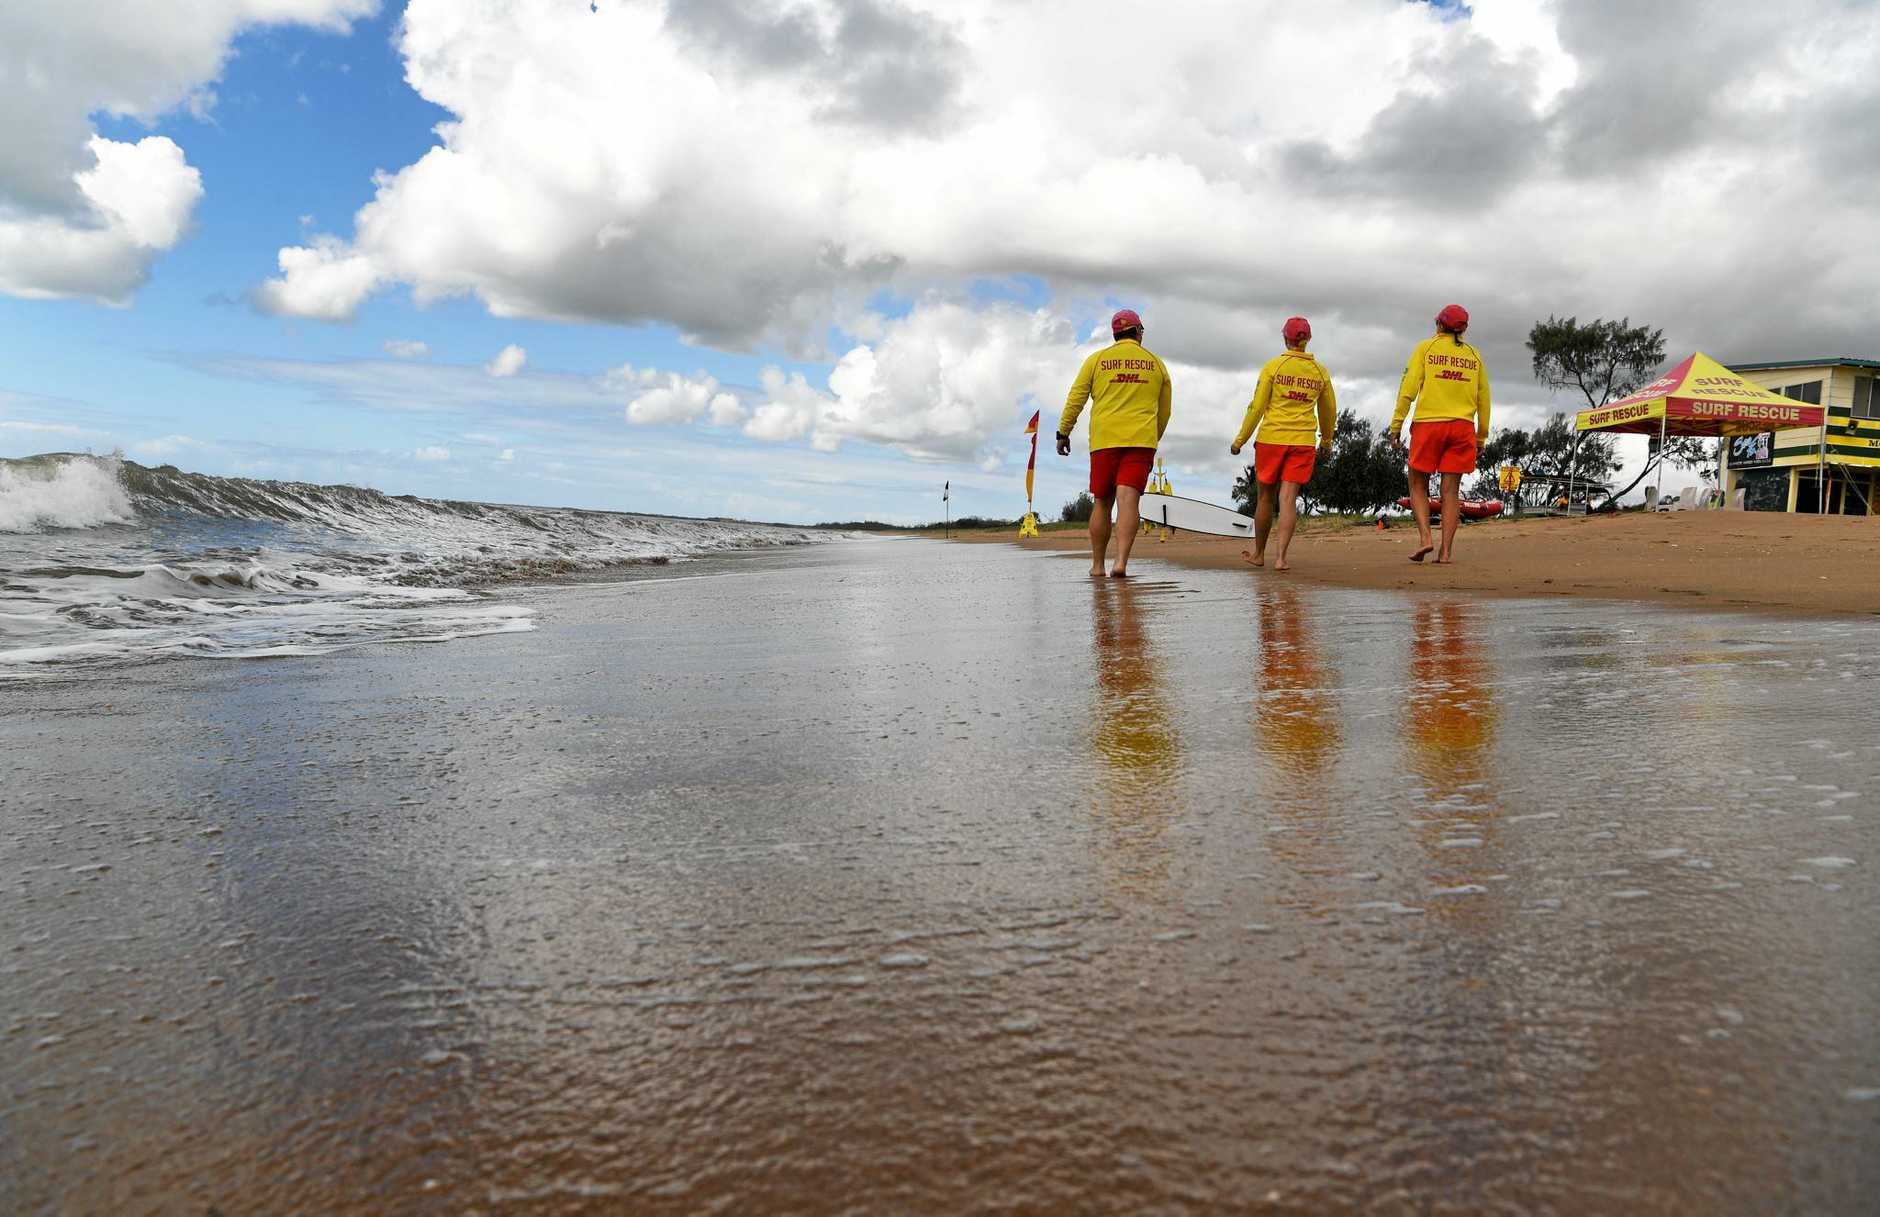 SURF RESCUE: James Cook, Deb Bright and Lynne Messer at Moore Park Beach.